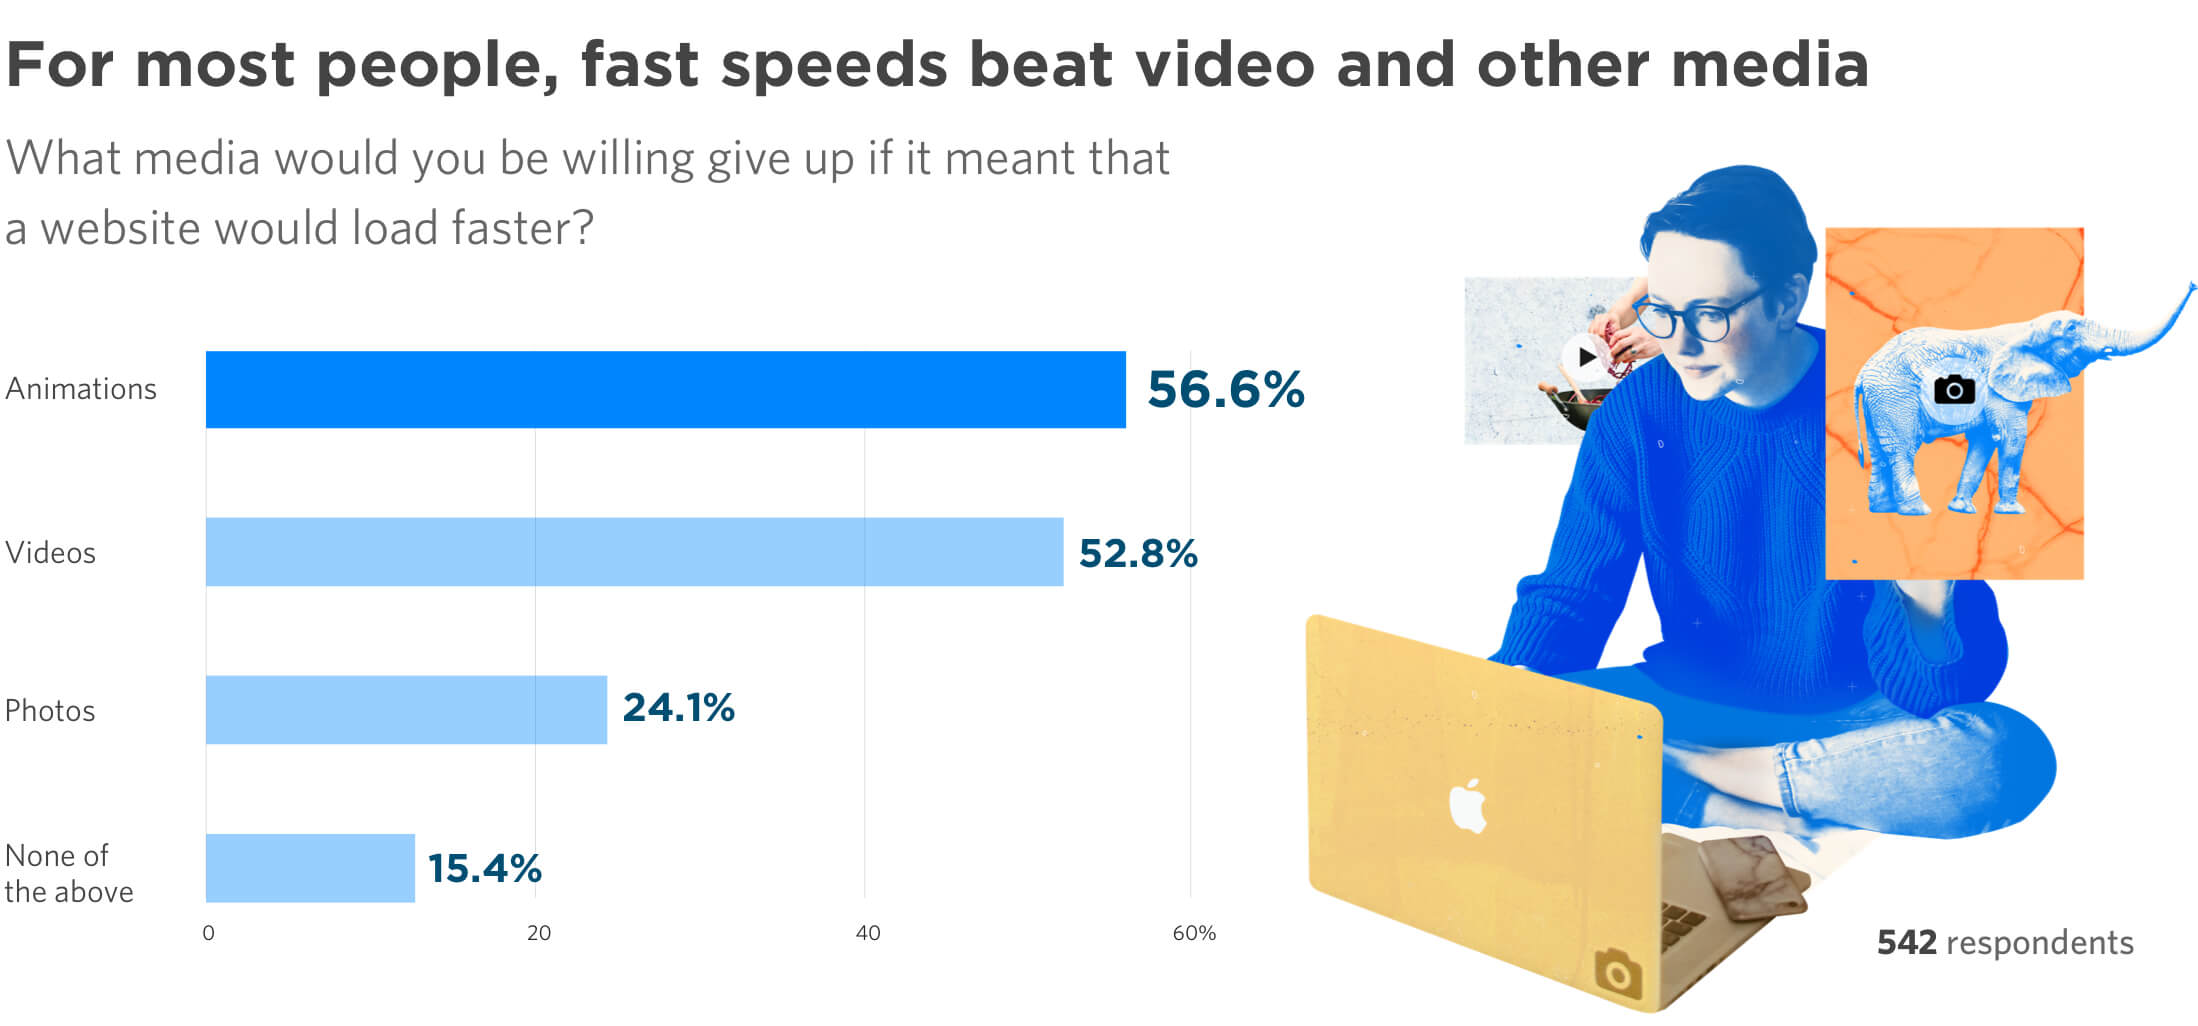 For most people, fast page speed beats video and other media